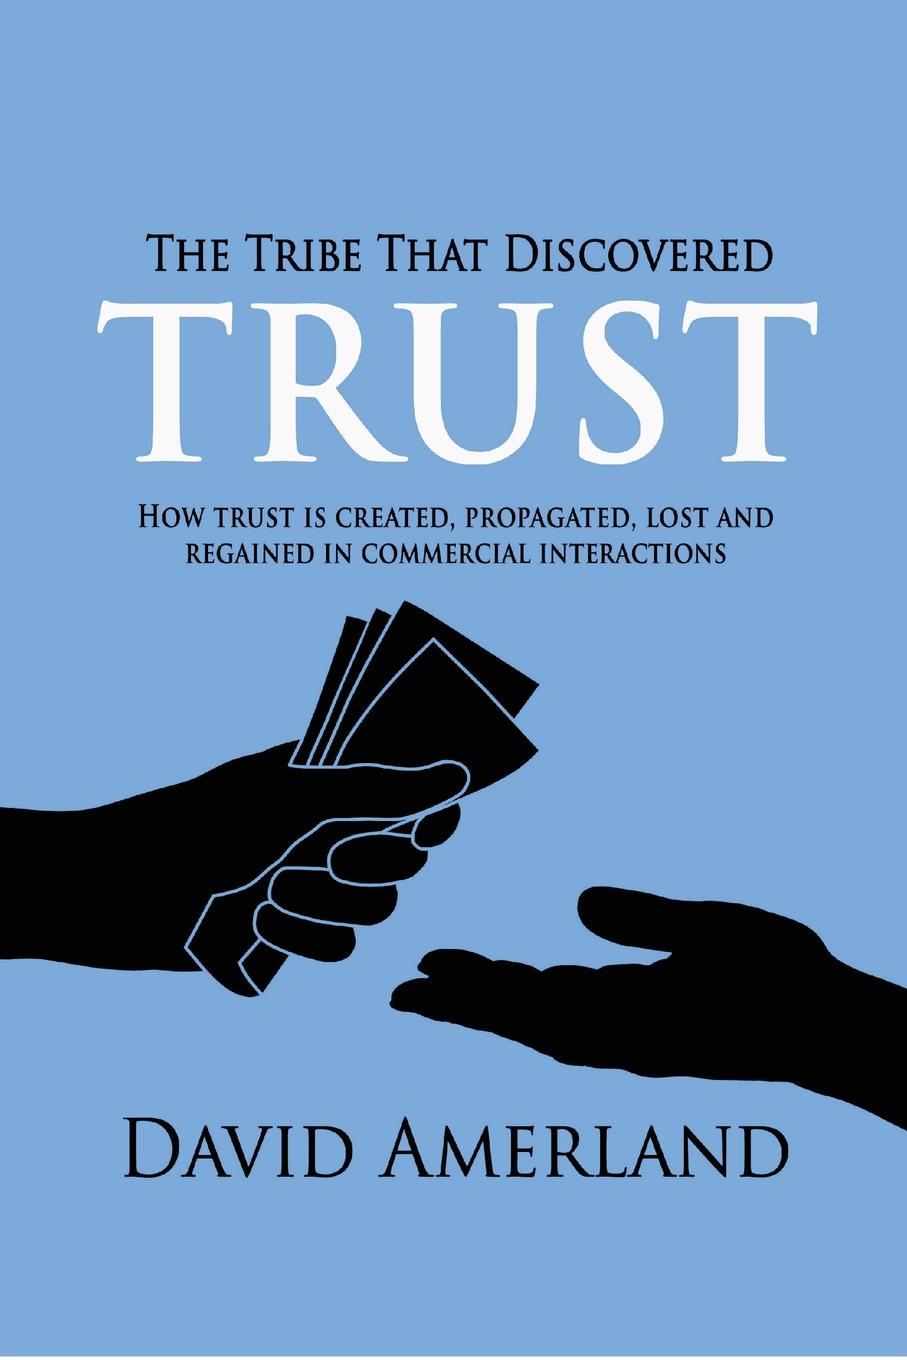 David Amerland The Tribe That Discovered Trust. How Trust is Created, Propagated, Lost and Regained in Commercial Interactions william brooks t playing bigger than you are how to sell big accounts even if you re david in a world of goliaths